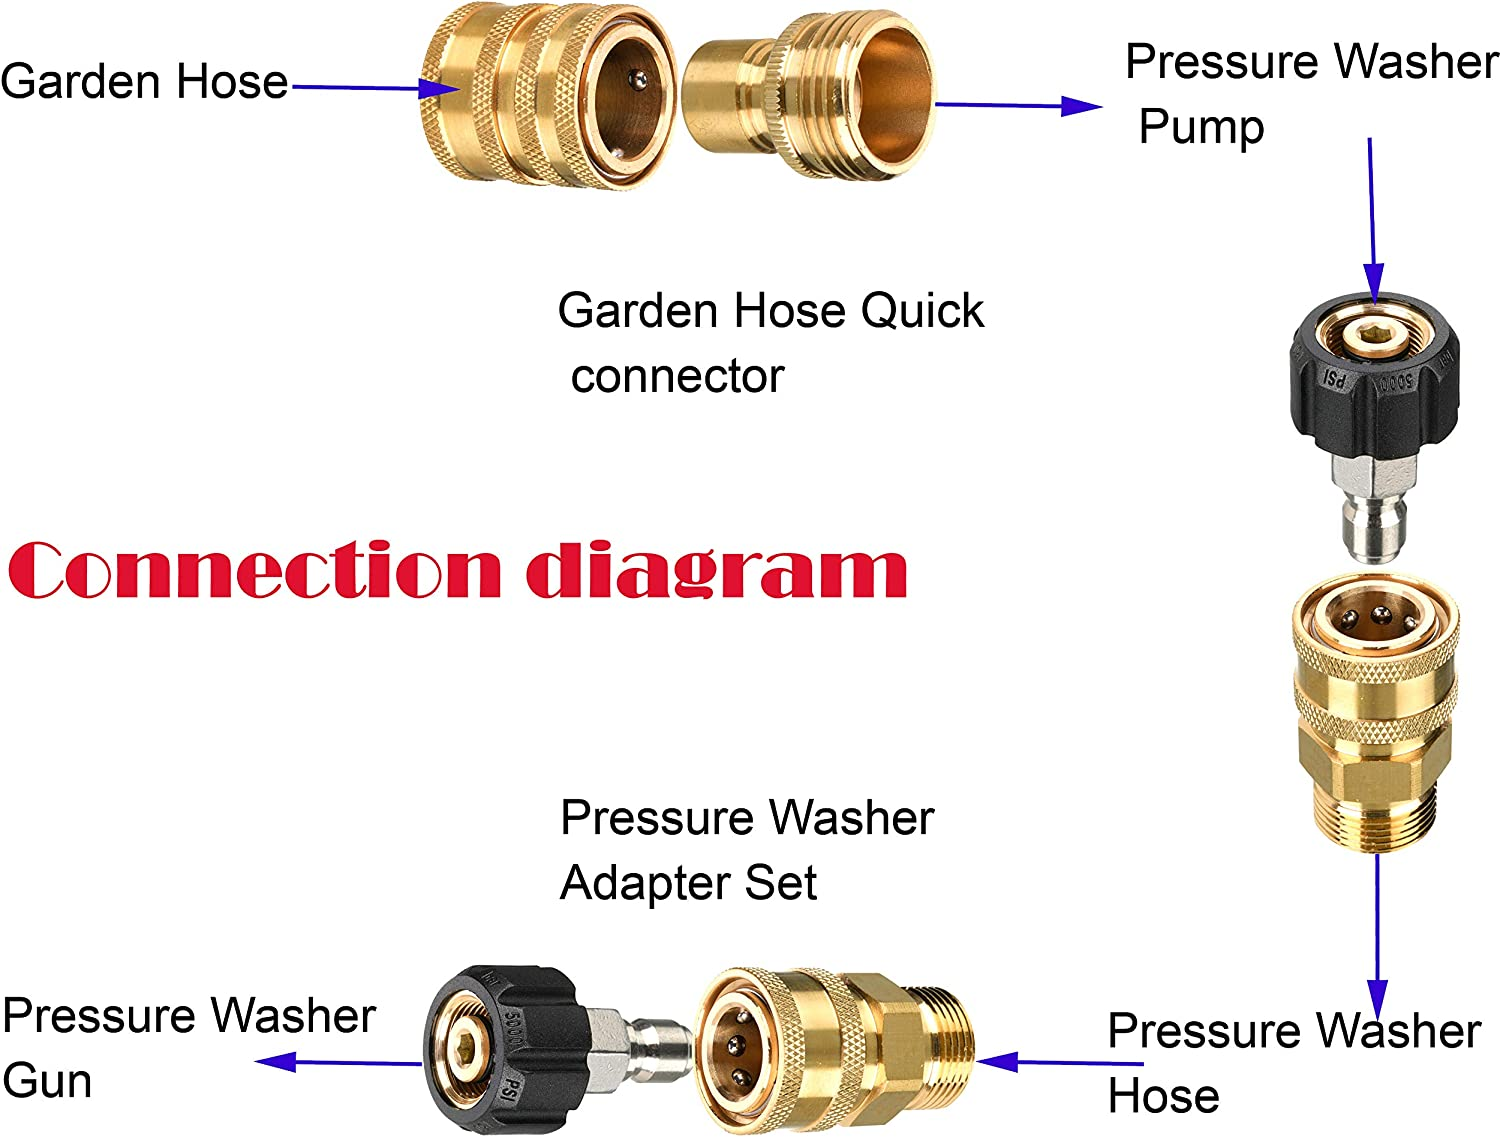 Adapter for Washer Gun,Pump,Power Washer,8-Pack 3//4 to Quick Release NSEN Pressure/Washer/Adapter/Set,Quick/Connect/Kit,M22 Swivel to 3//8 Quick Connect